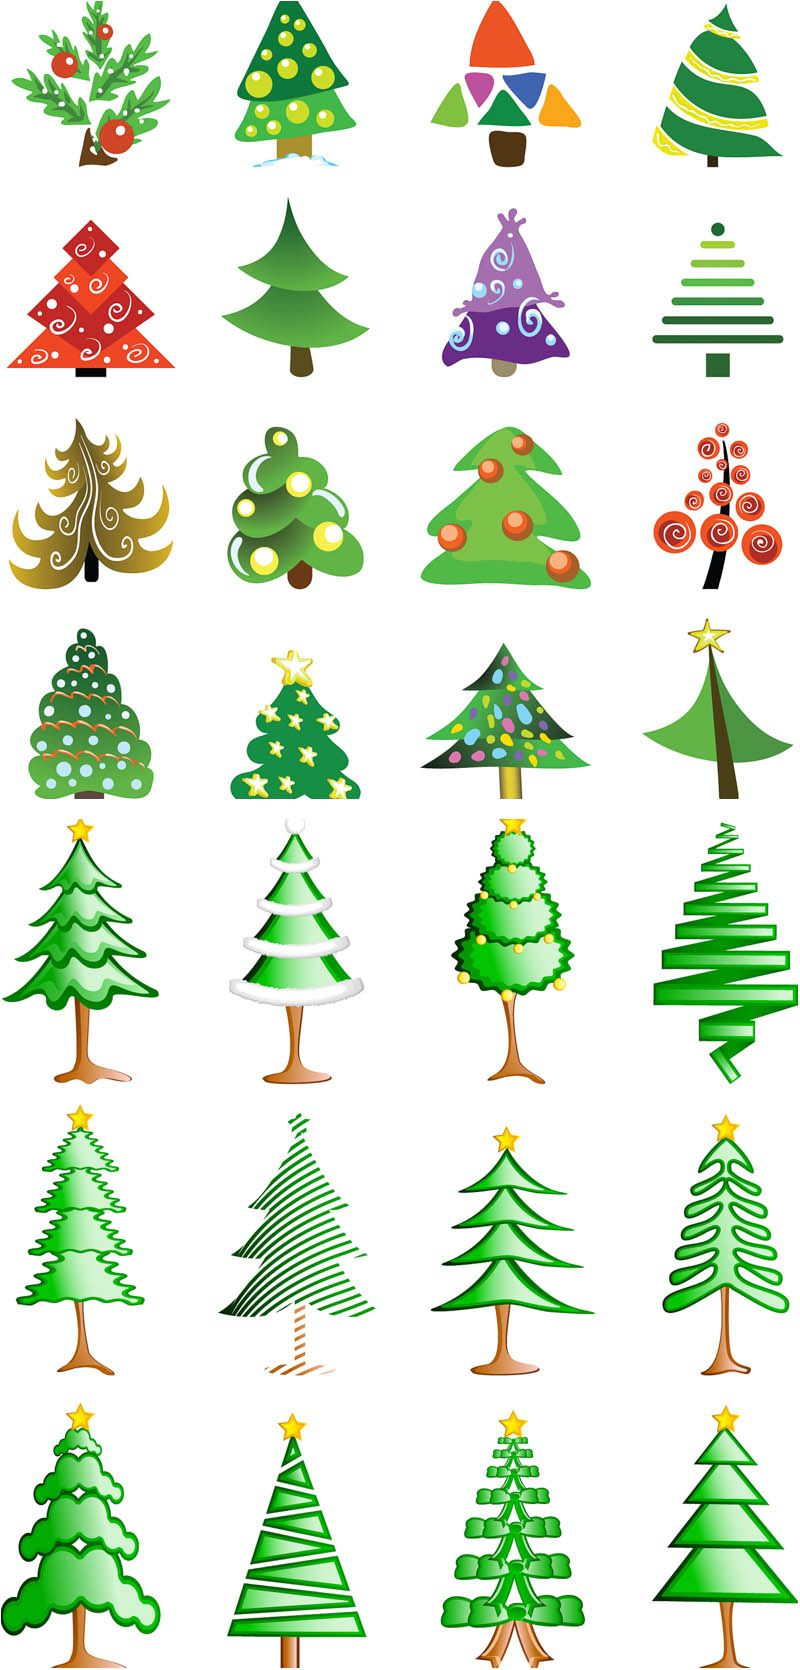 2 Sets of 28 vector Christmas tree logotypes in cartoon